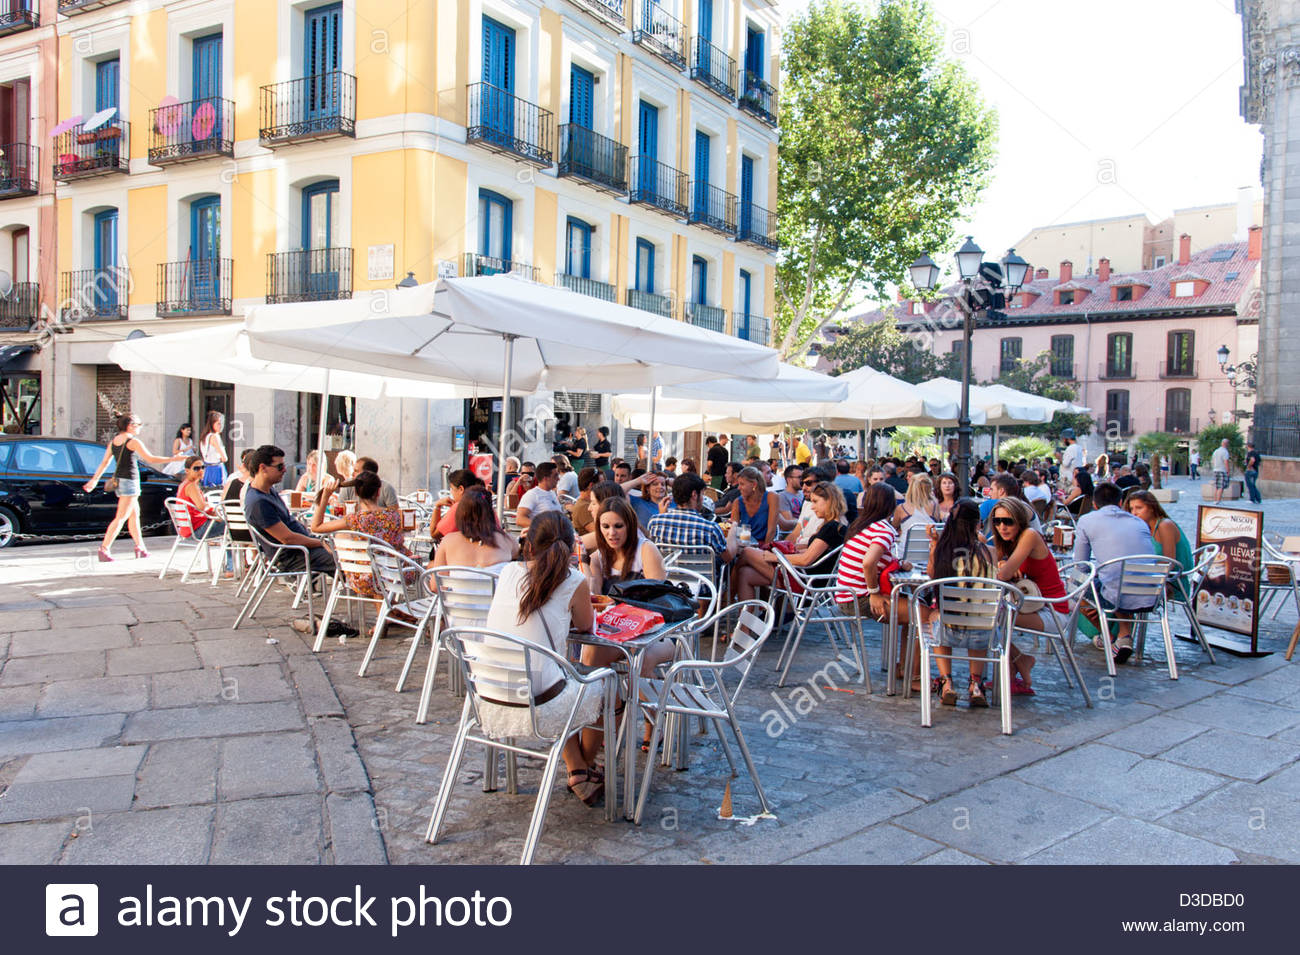 Crowded restaurant table - Crowded Sidewalk Bar Tables In Plaza San Andres La Latina Madrid Spain